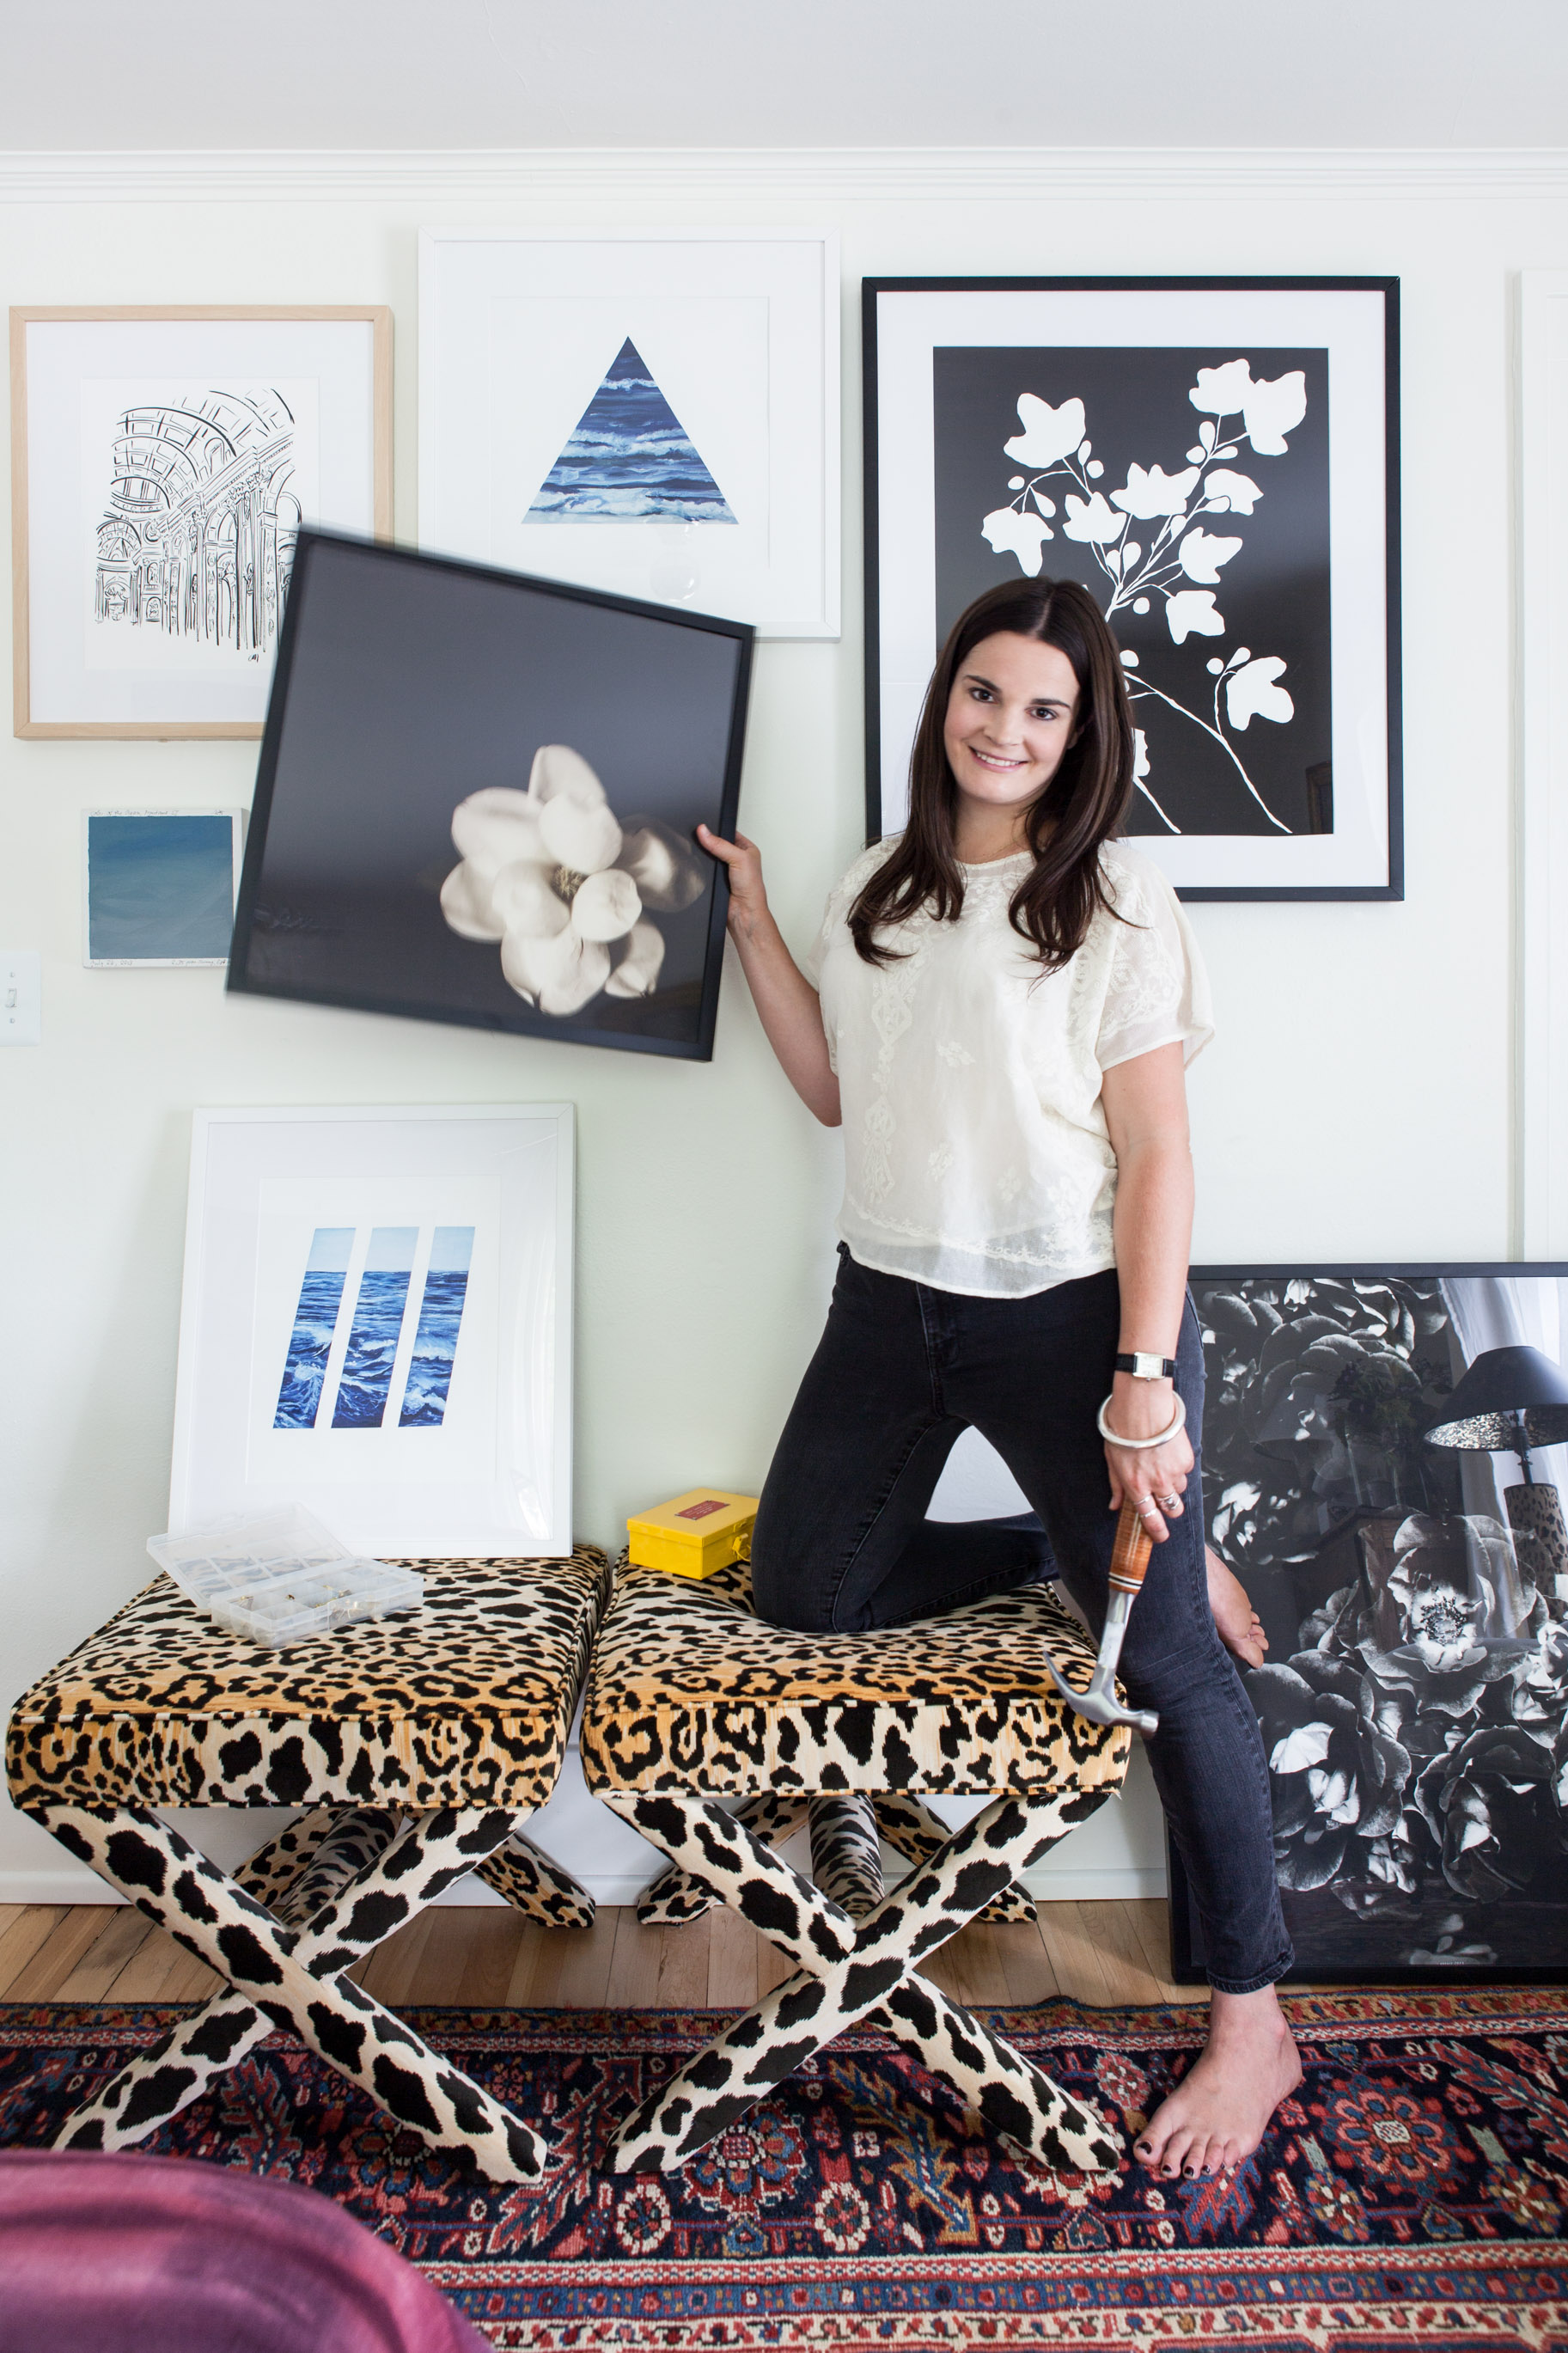 Michelle at home with a collection of pieces from Artfully Walls. Photo by  Marta Xochilt Perez .